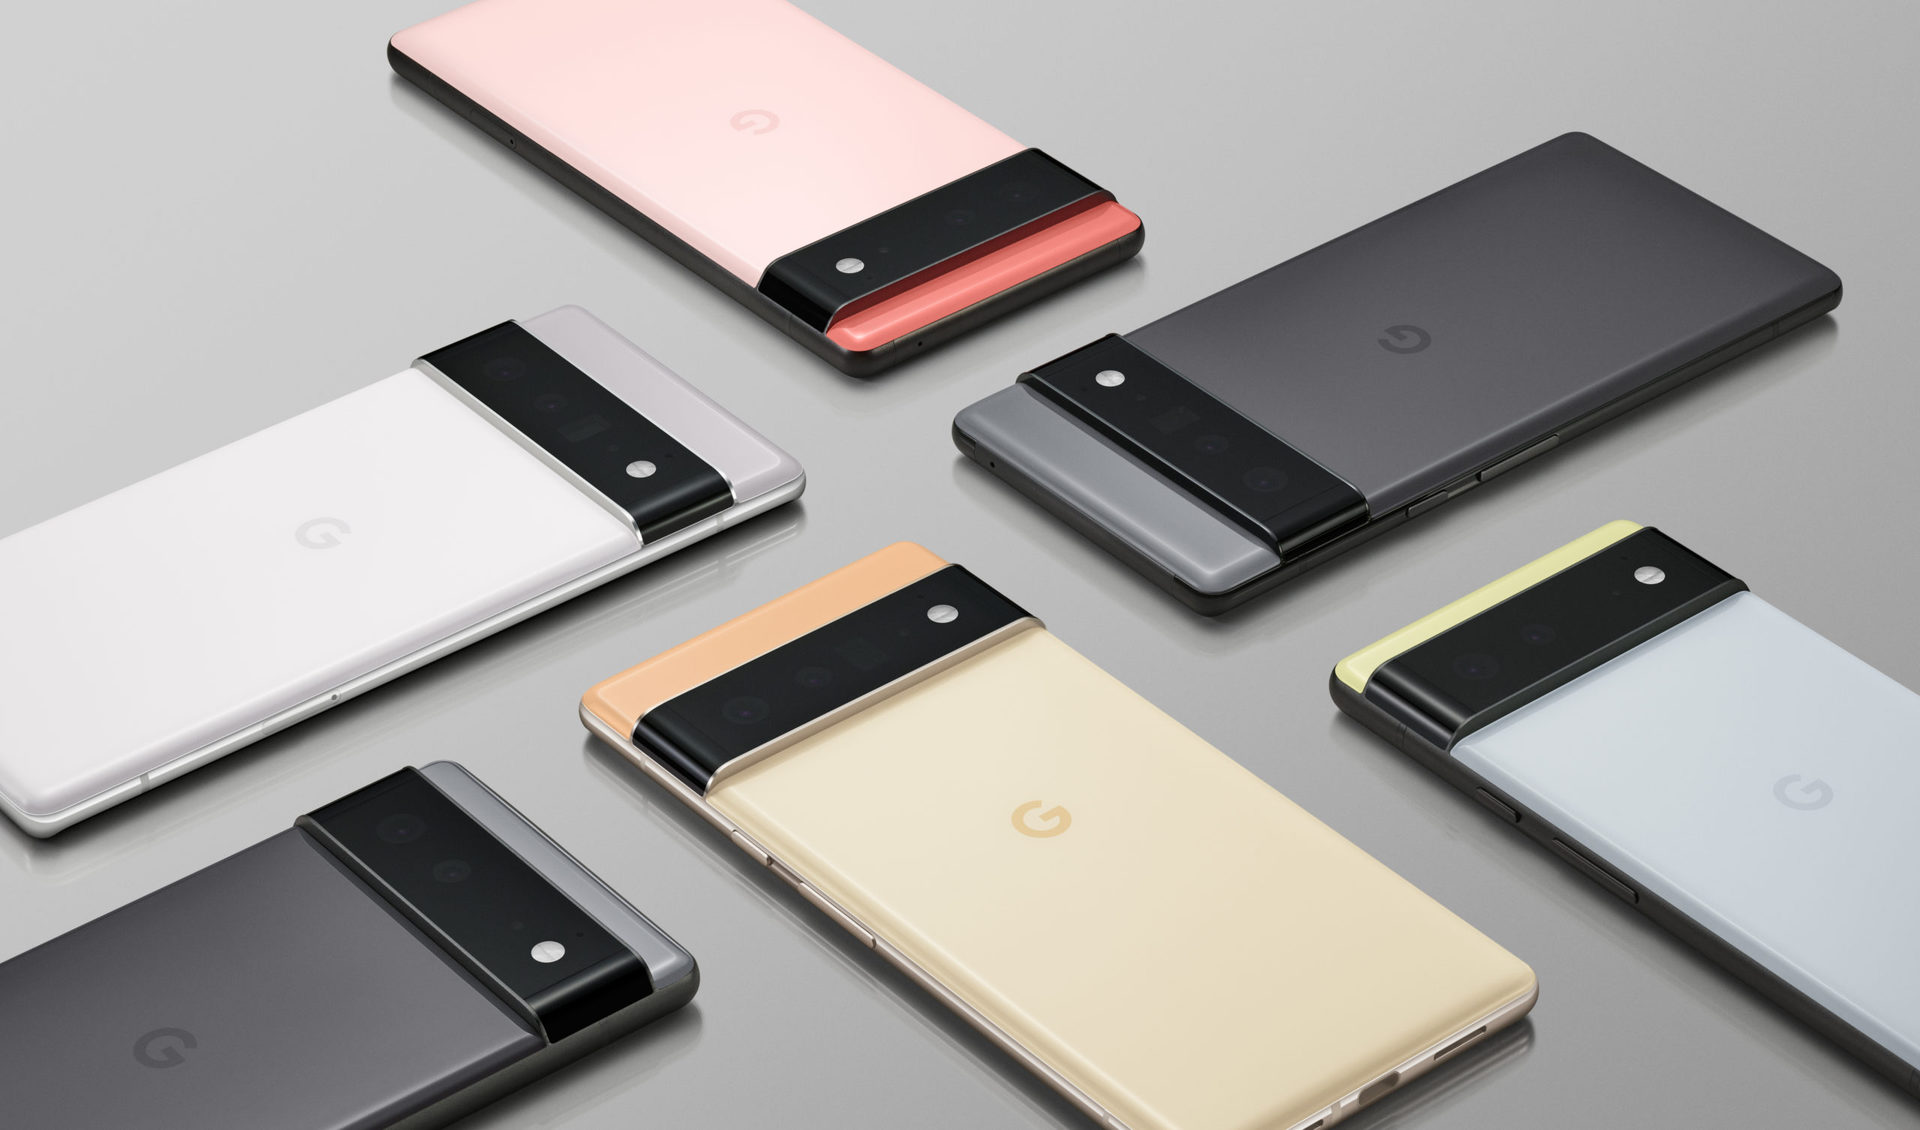 EXCLUSIVE: Google Pixel 6 and Pixel 6 Pro Launching October 28th -  FrontPageTech.com